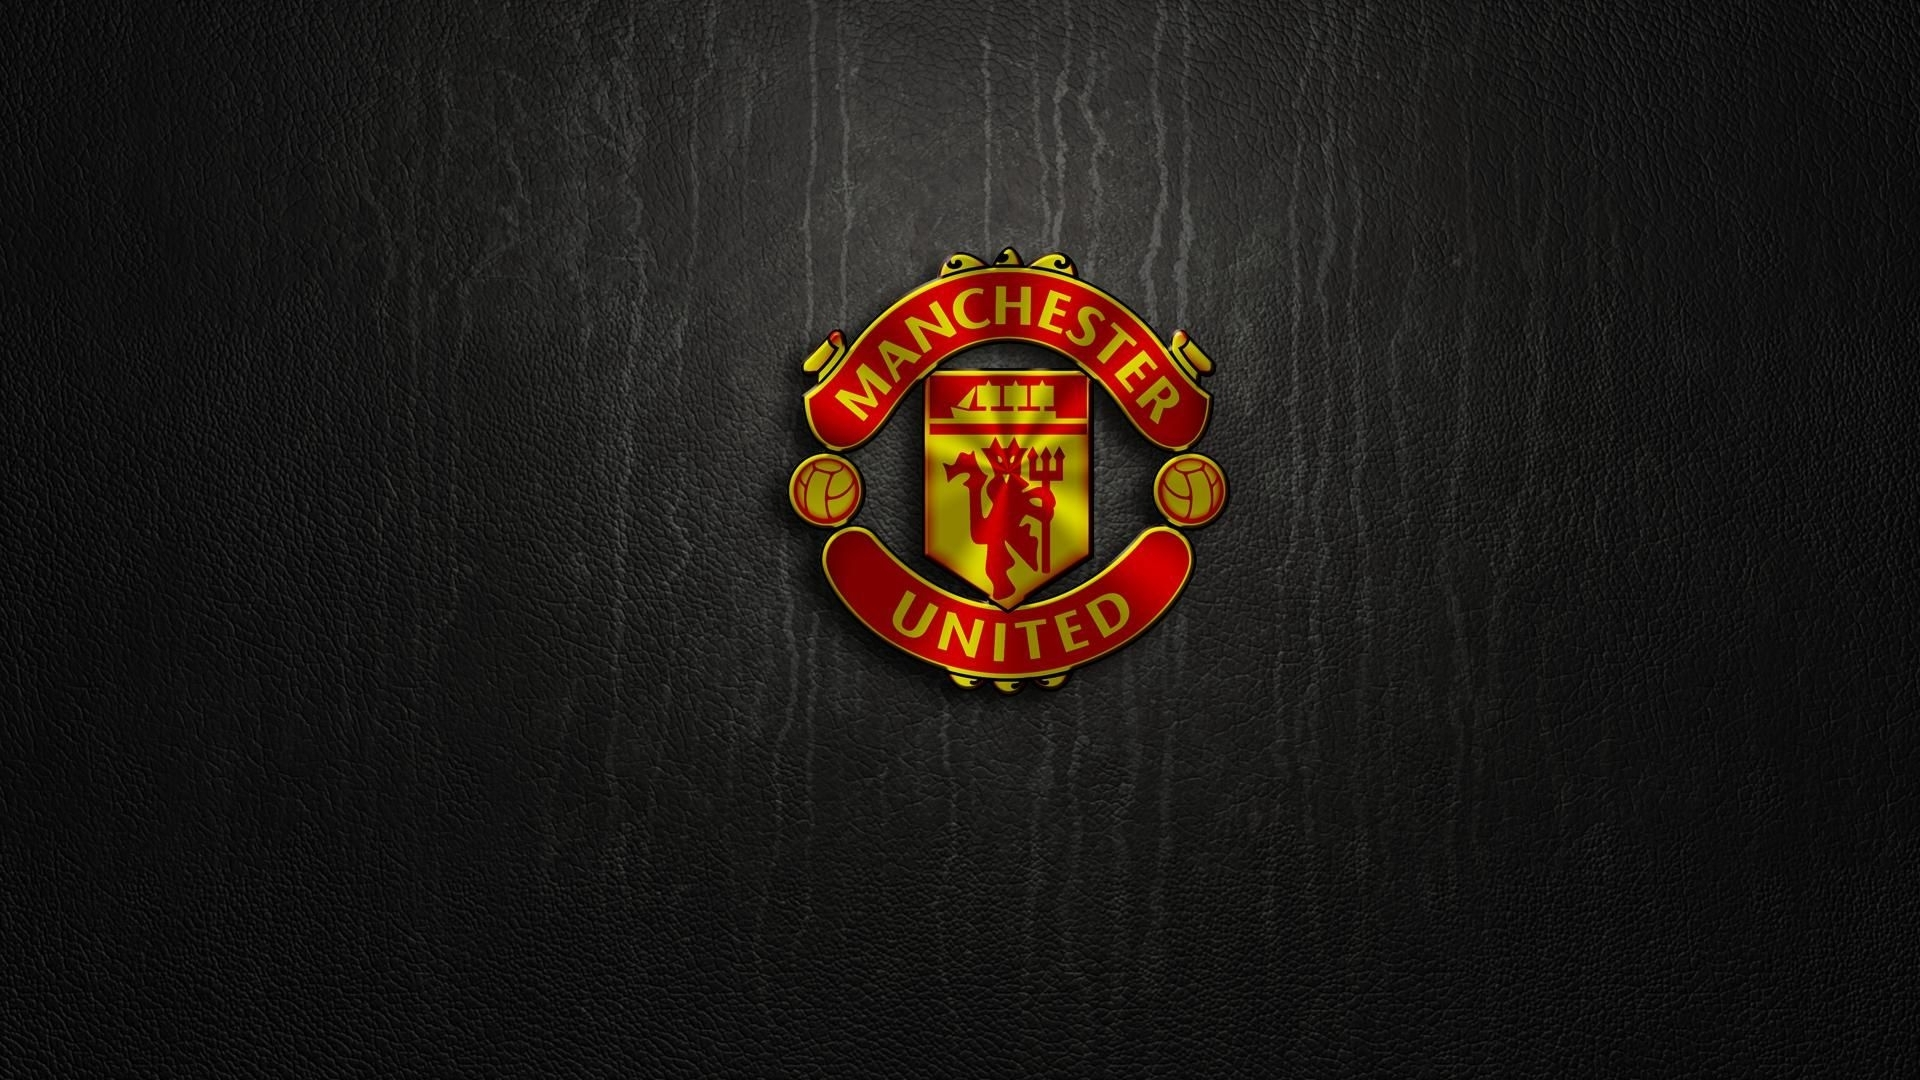 manchester united logo wallpapers hd 2015 - wallpaper cave | best